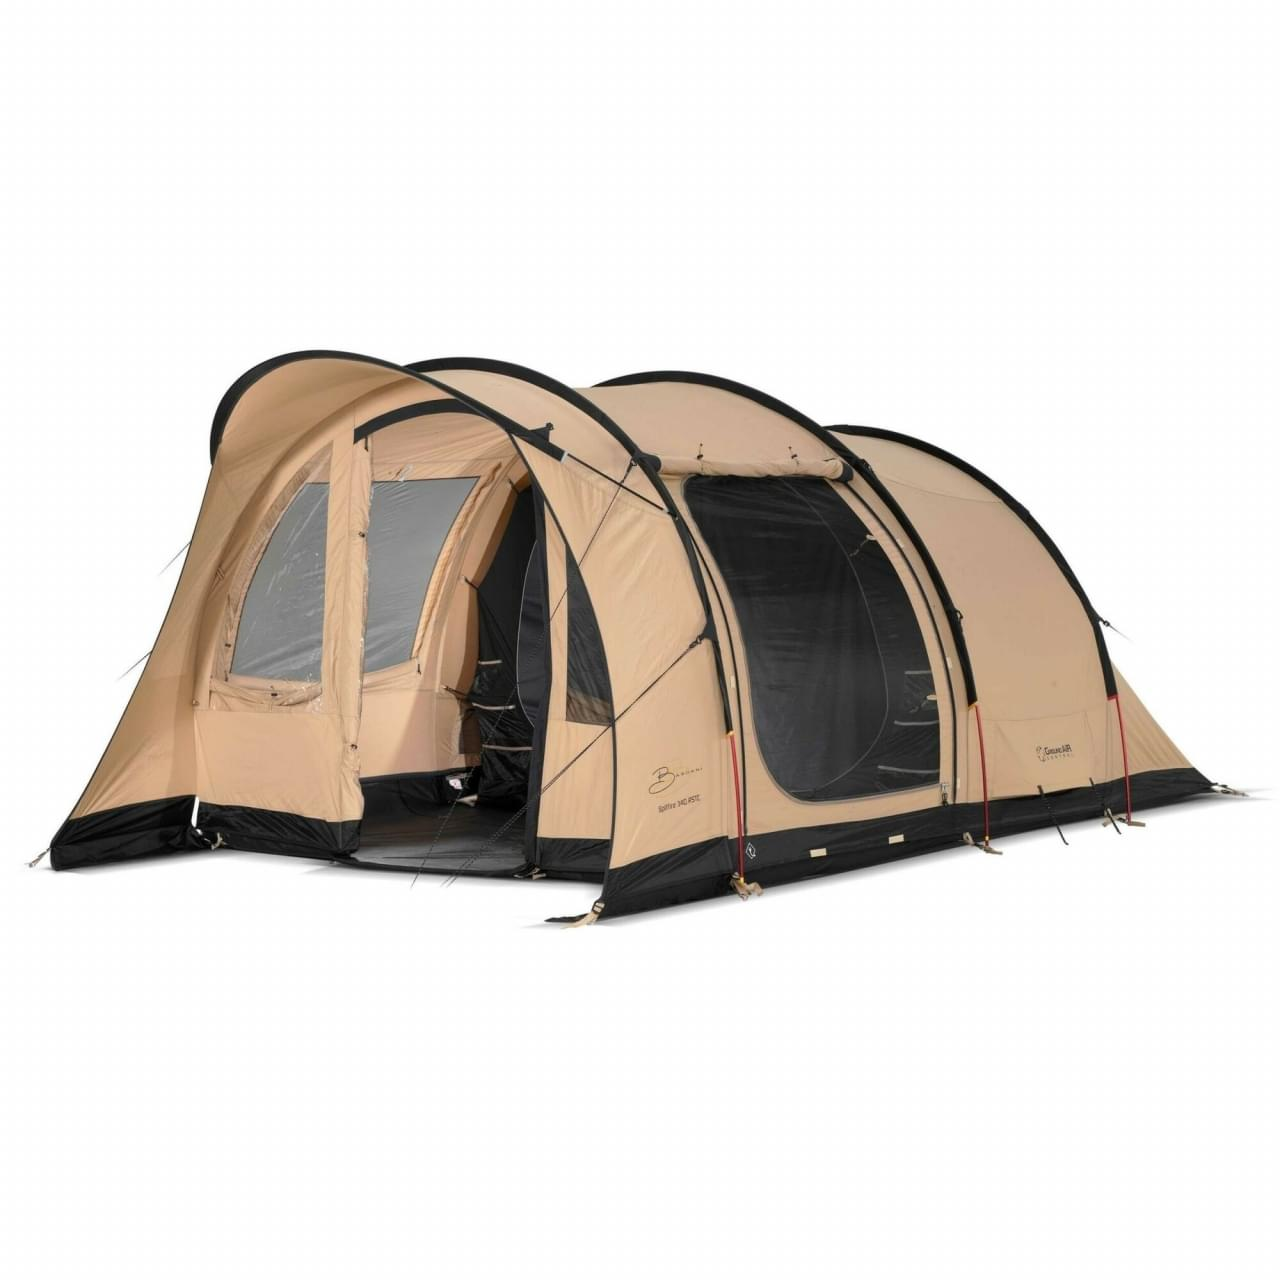 Bardani Spitfire 340 RSTC - 5 Persoons Tent Beige